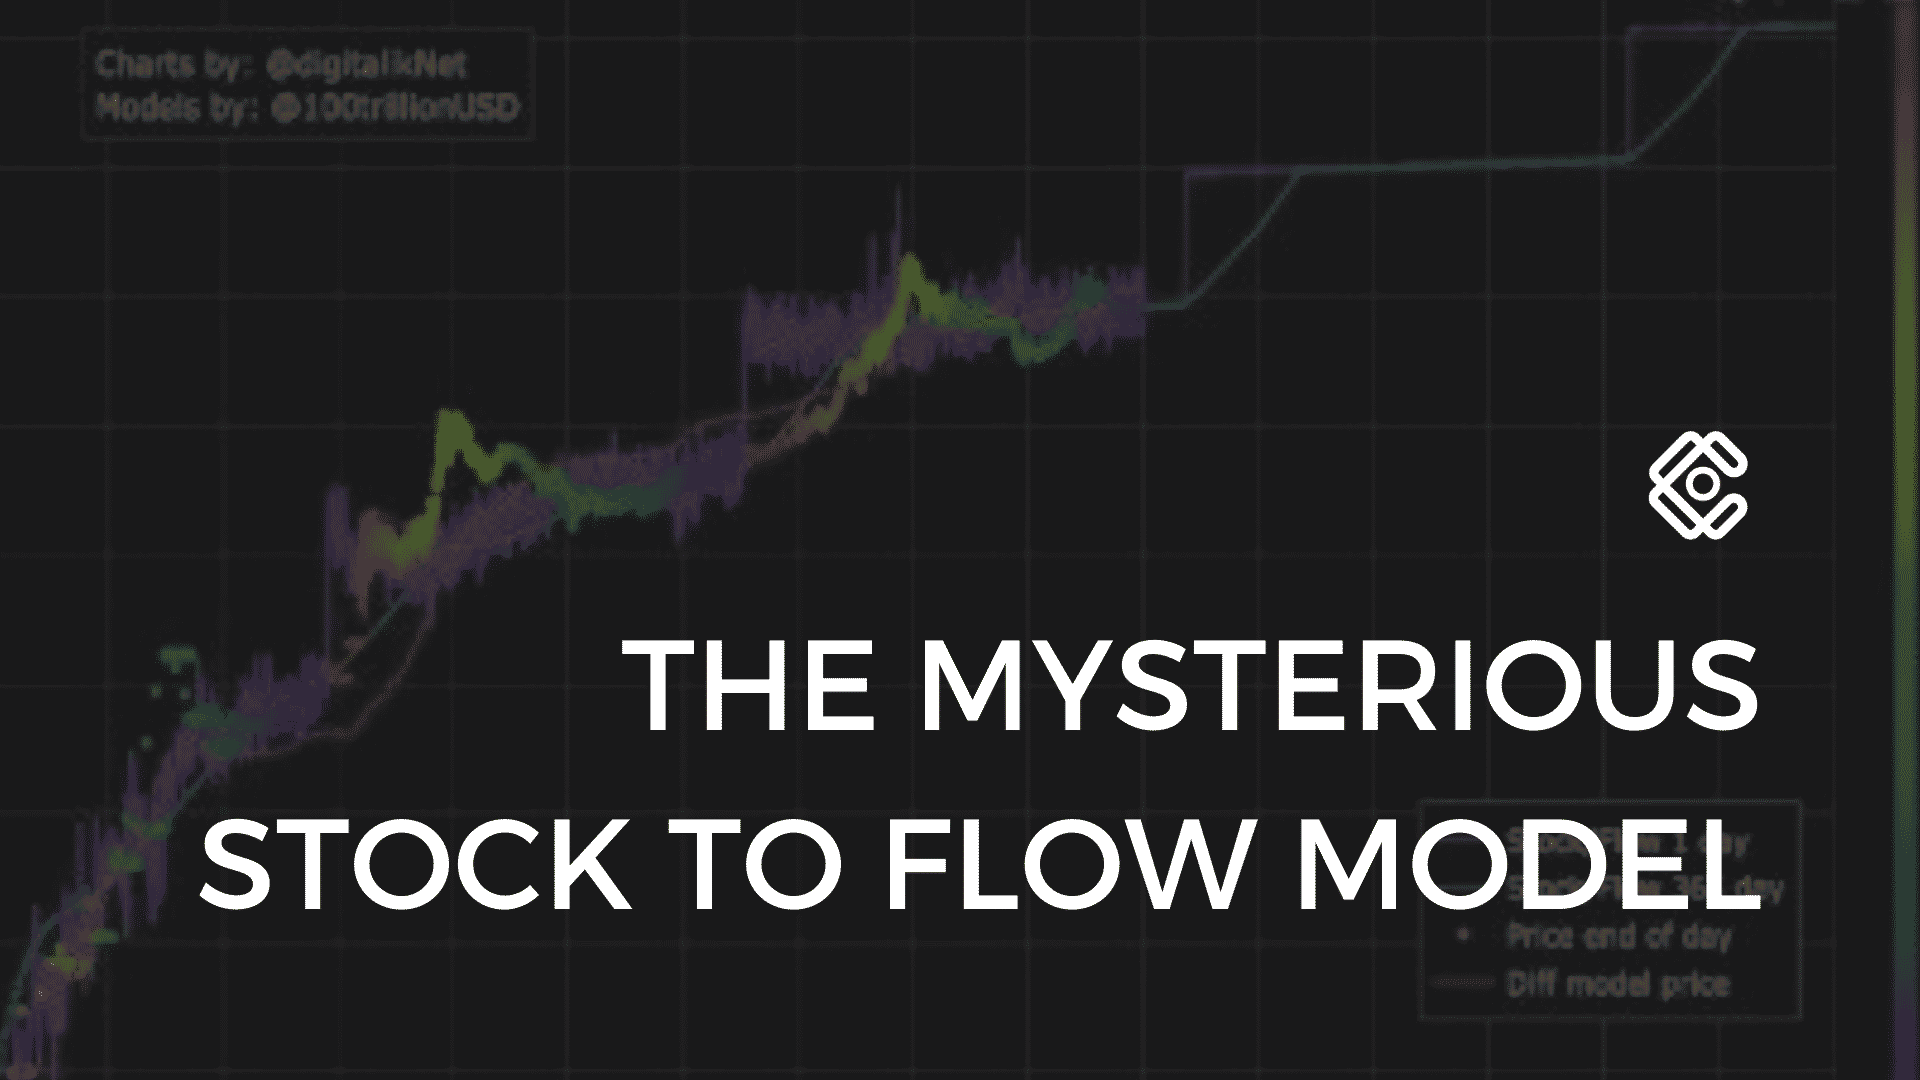 The mysterious Stock to Flow Model